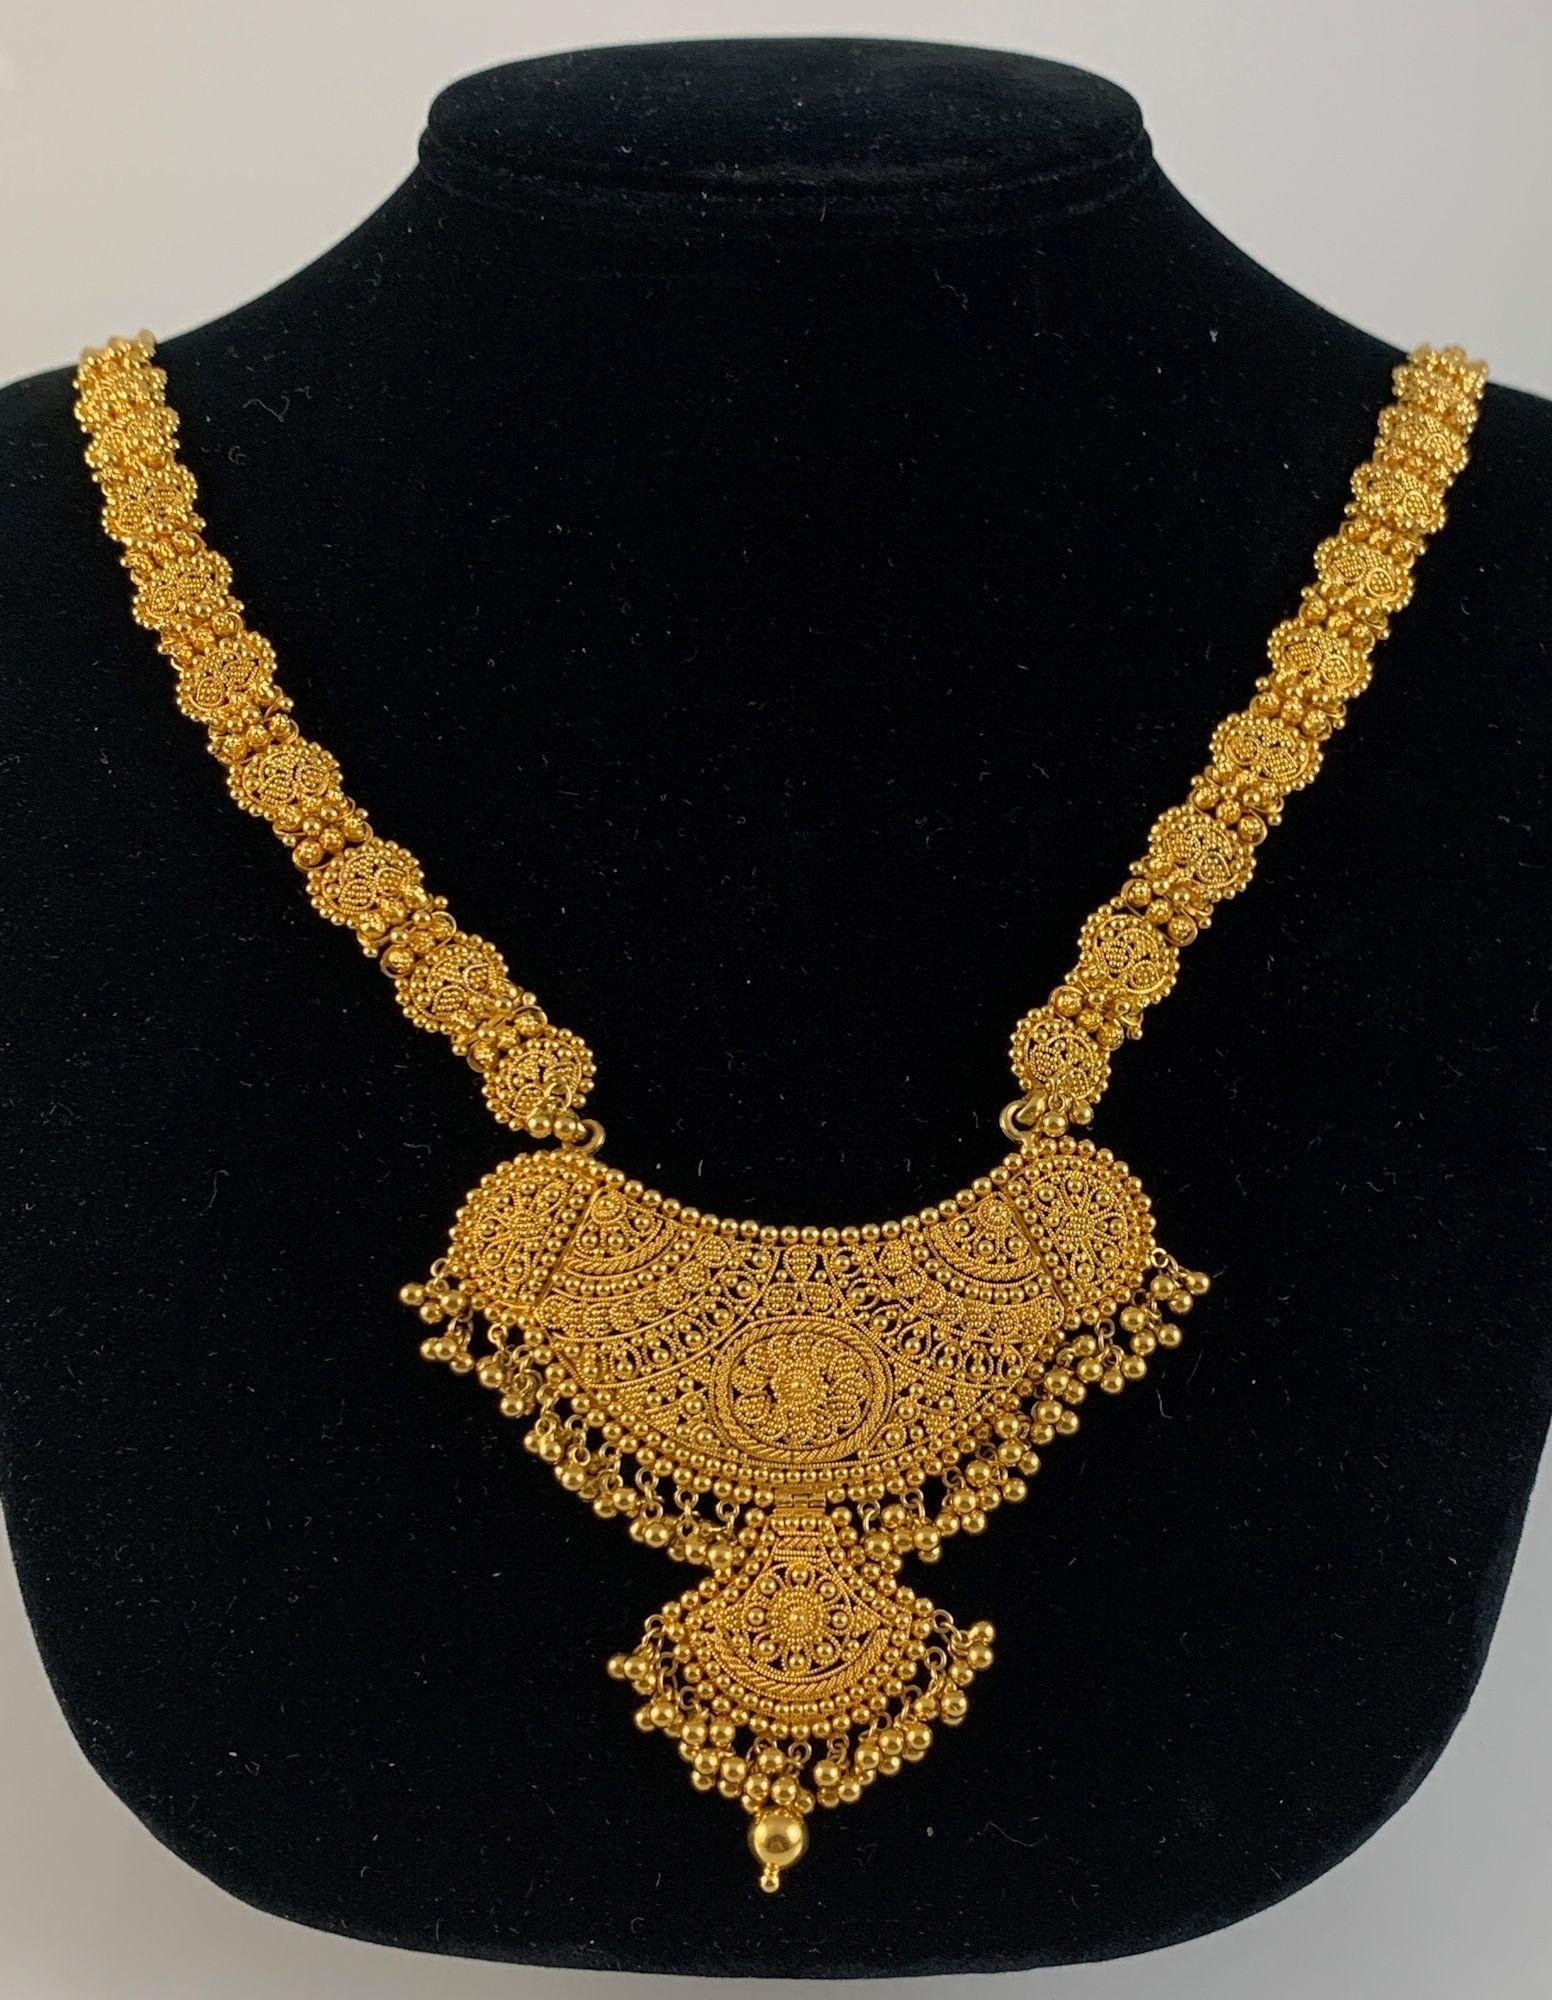 HIGH KT INDIAN GOLD NECKLACE